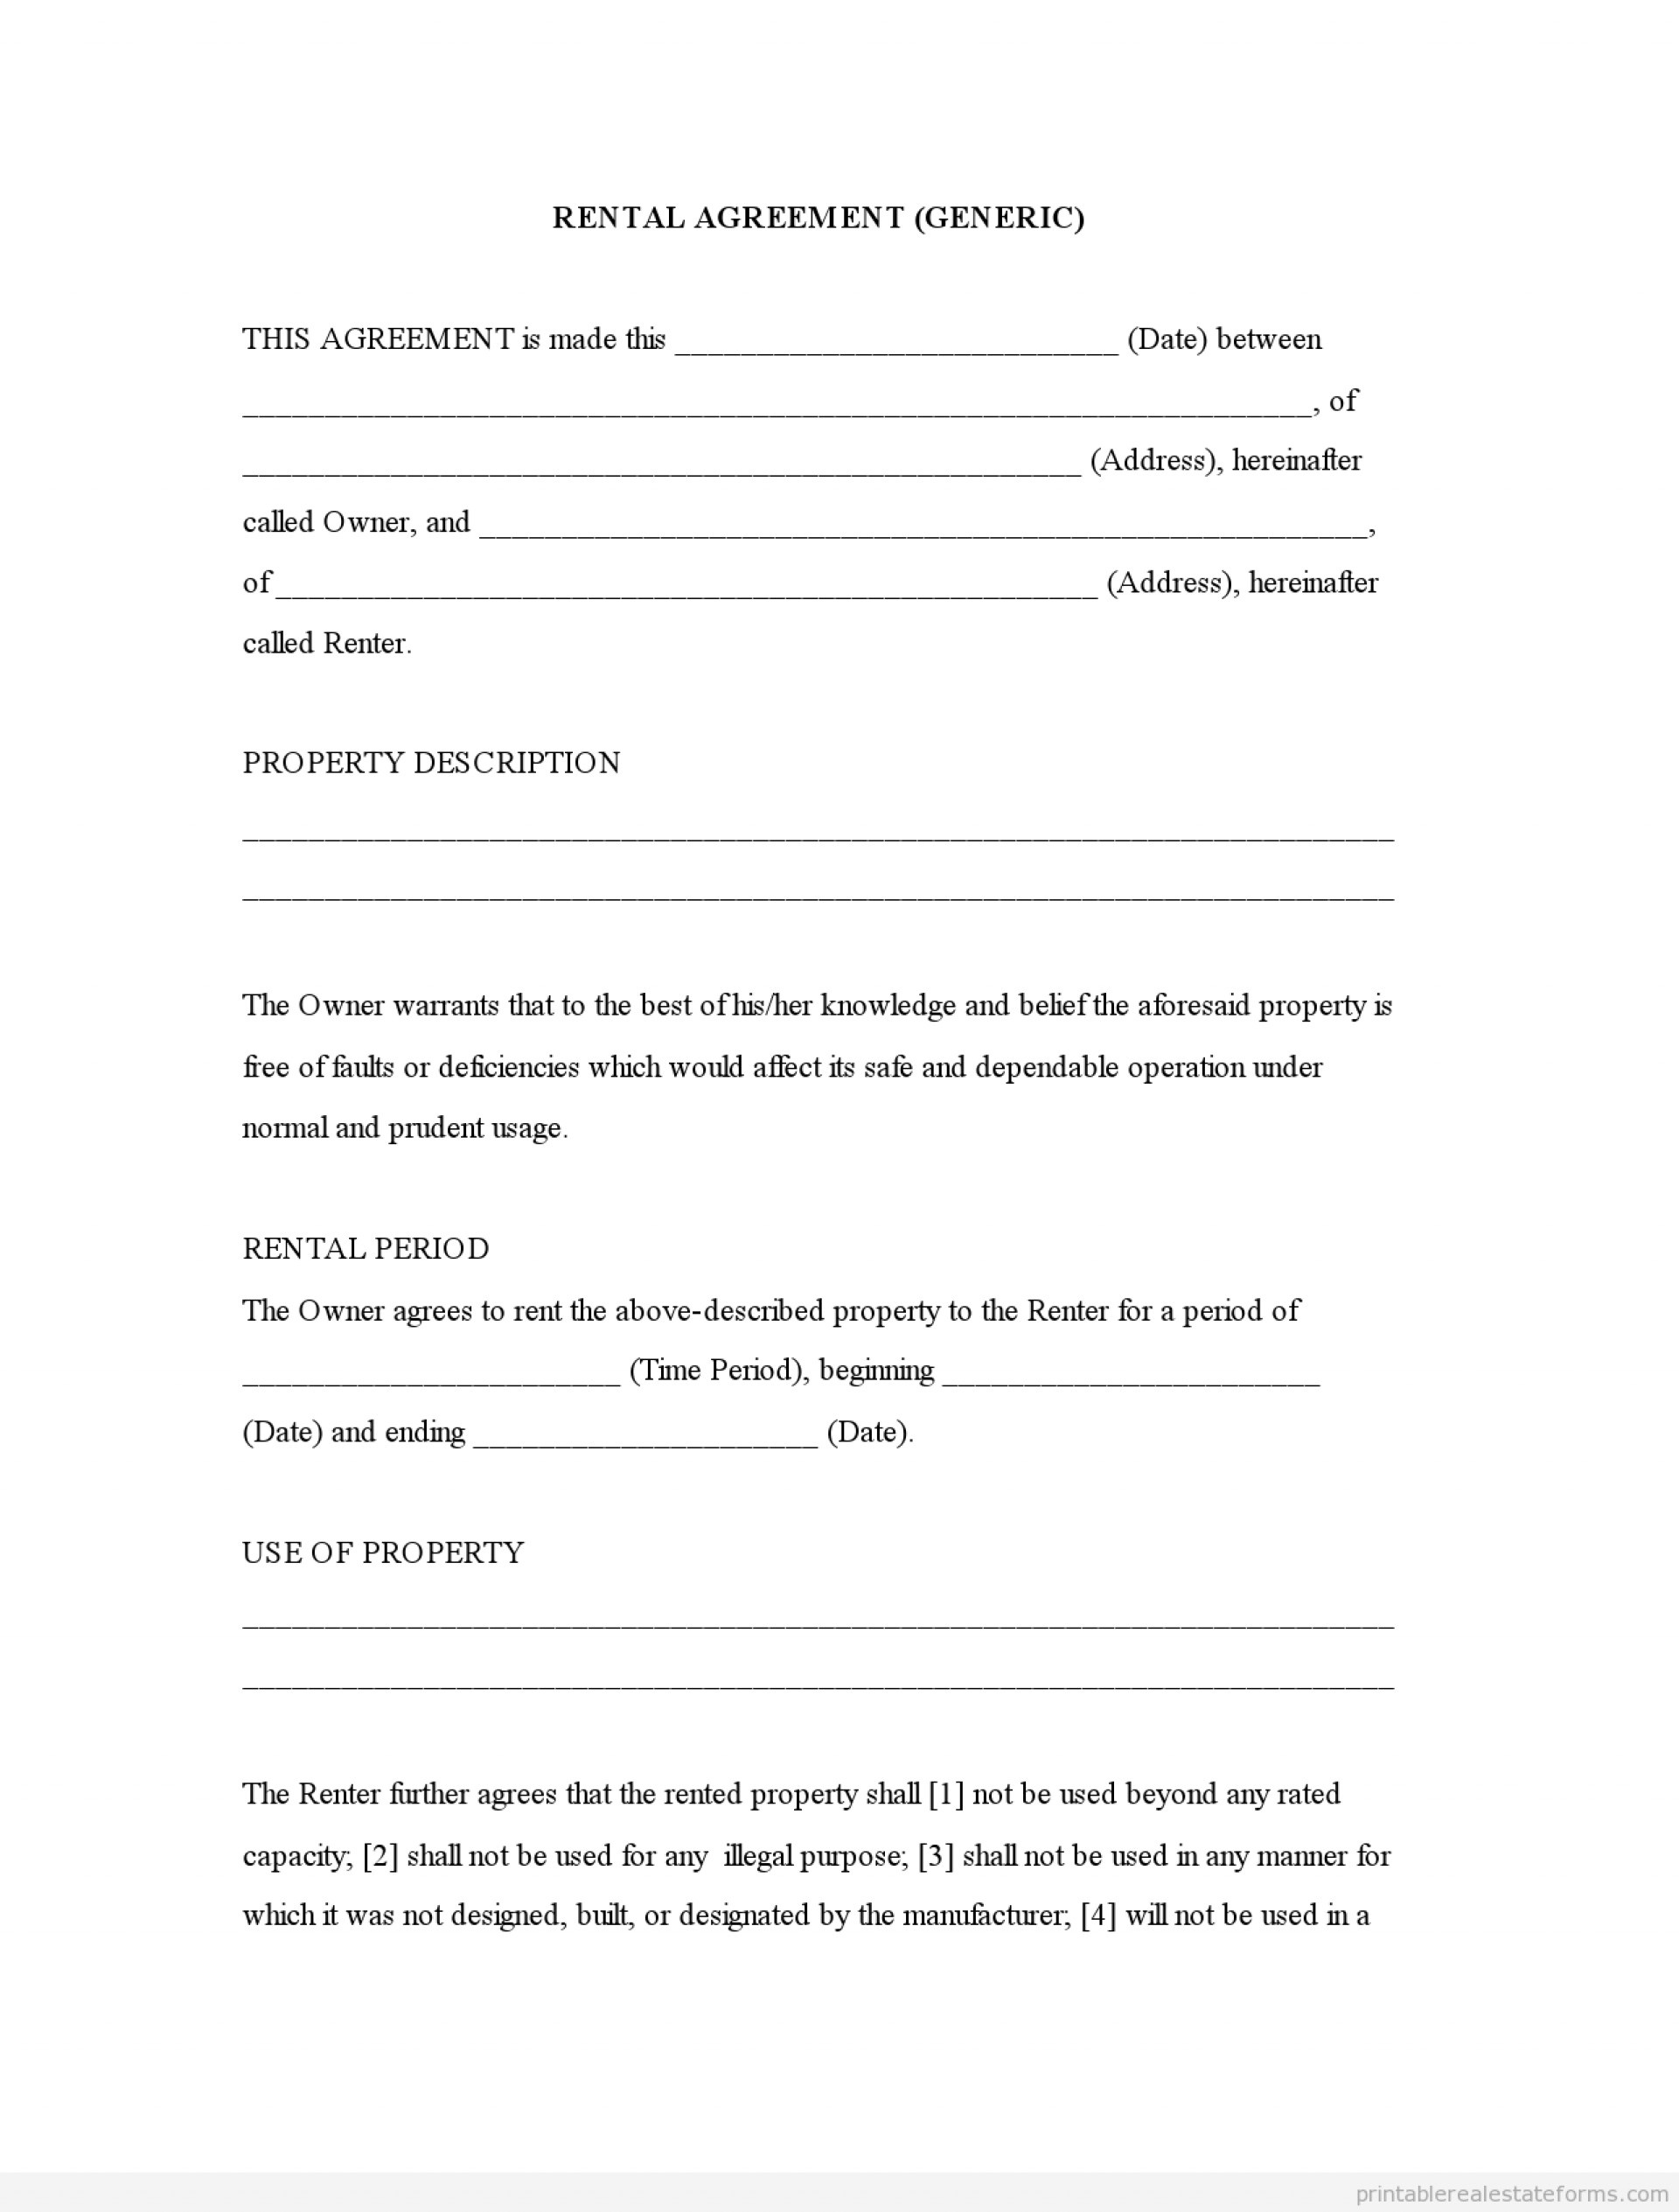 001 Template Ideas Free Printable Lease Agreement Outstanding - Free Printable Basic Rental Agreement